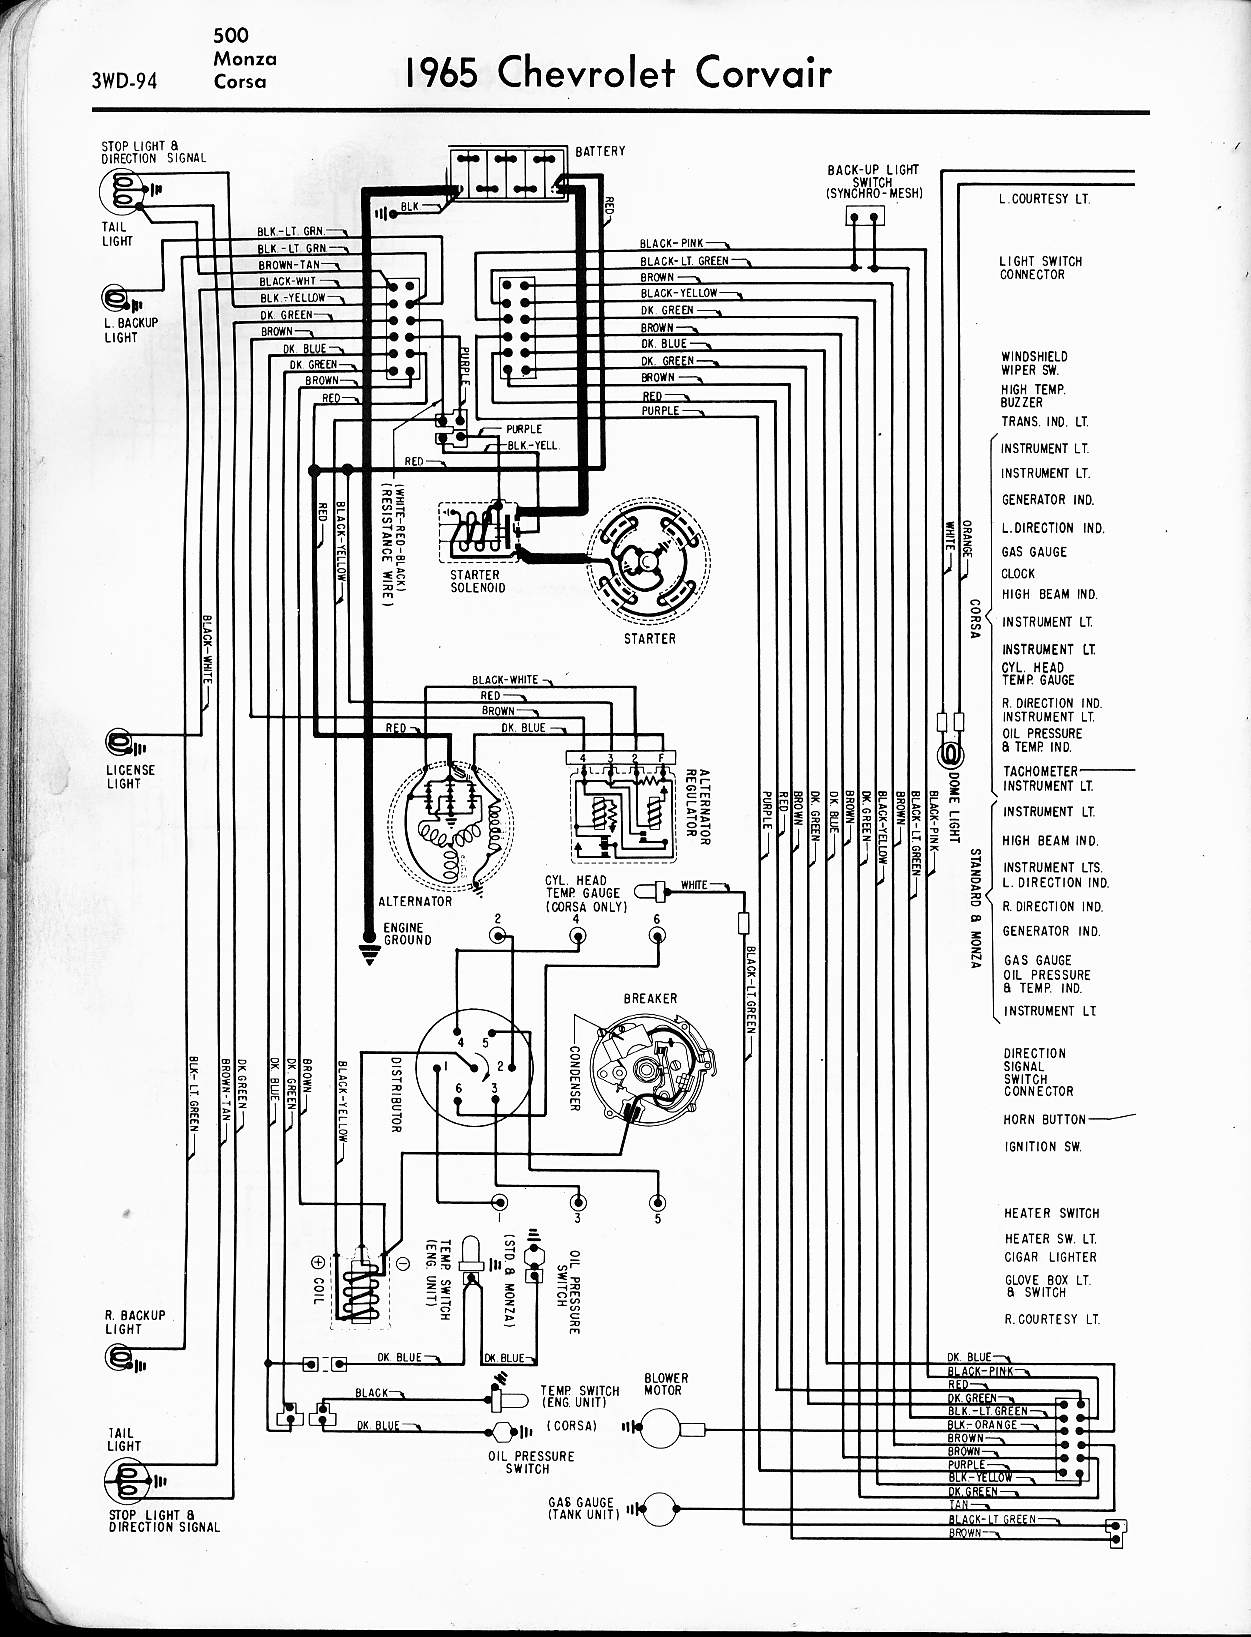 hight resolution of 1965 corvair wiring harness wiring diagram pictures u2022 rh mapavick co uk 1964 impala tail light